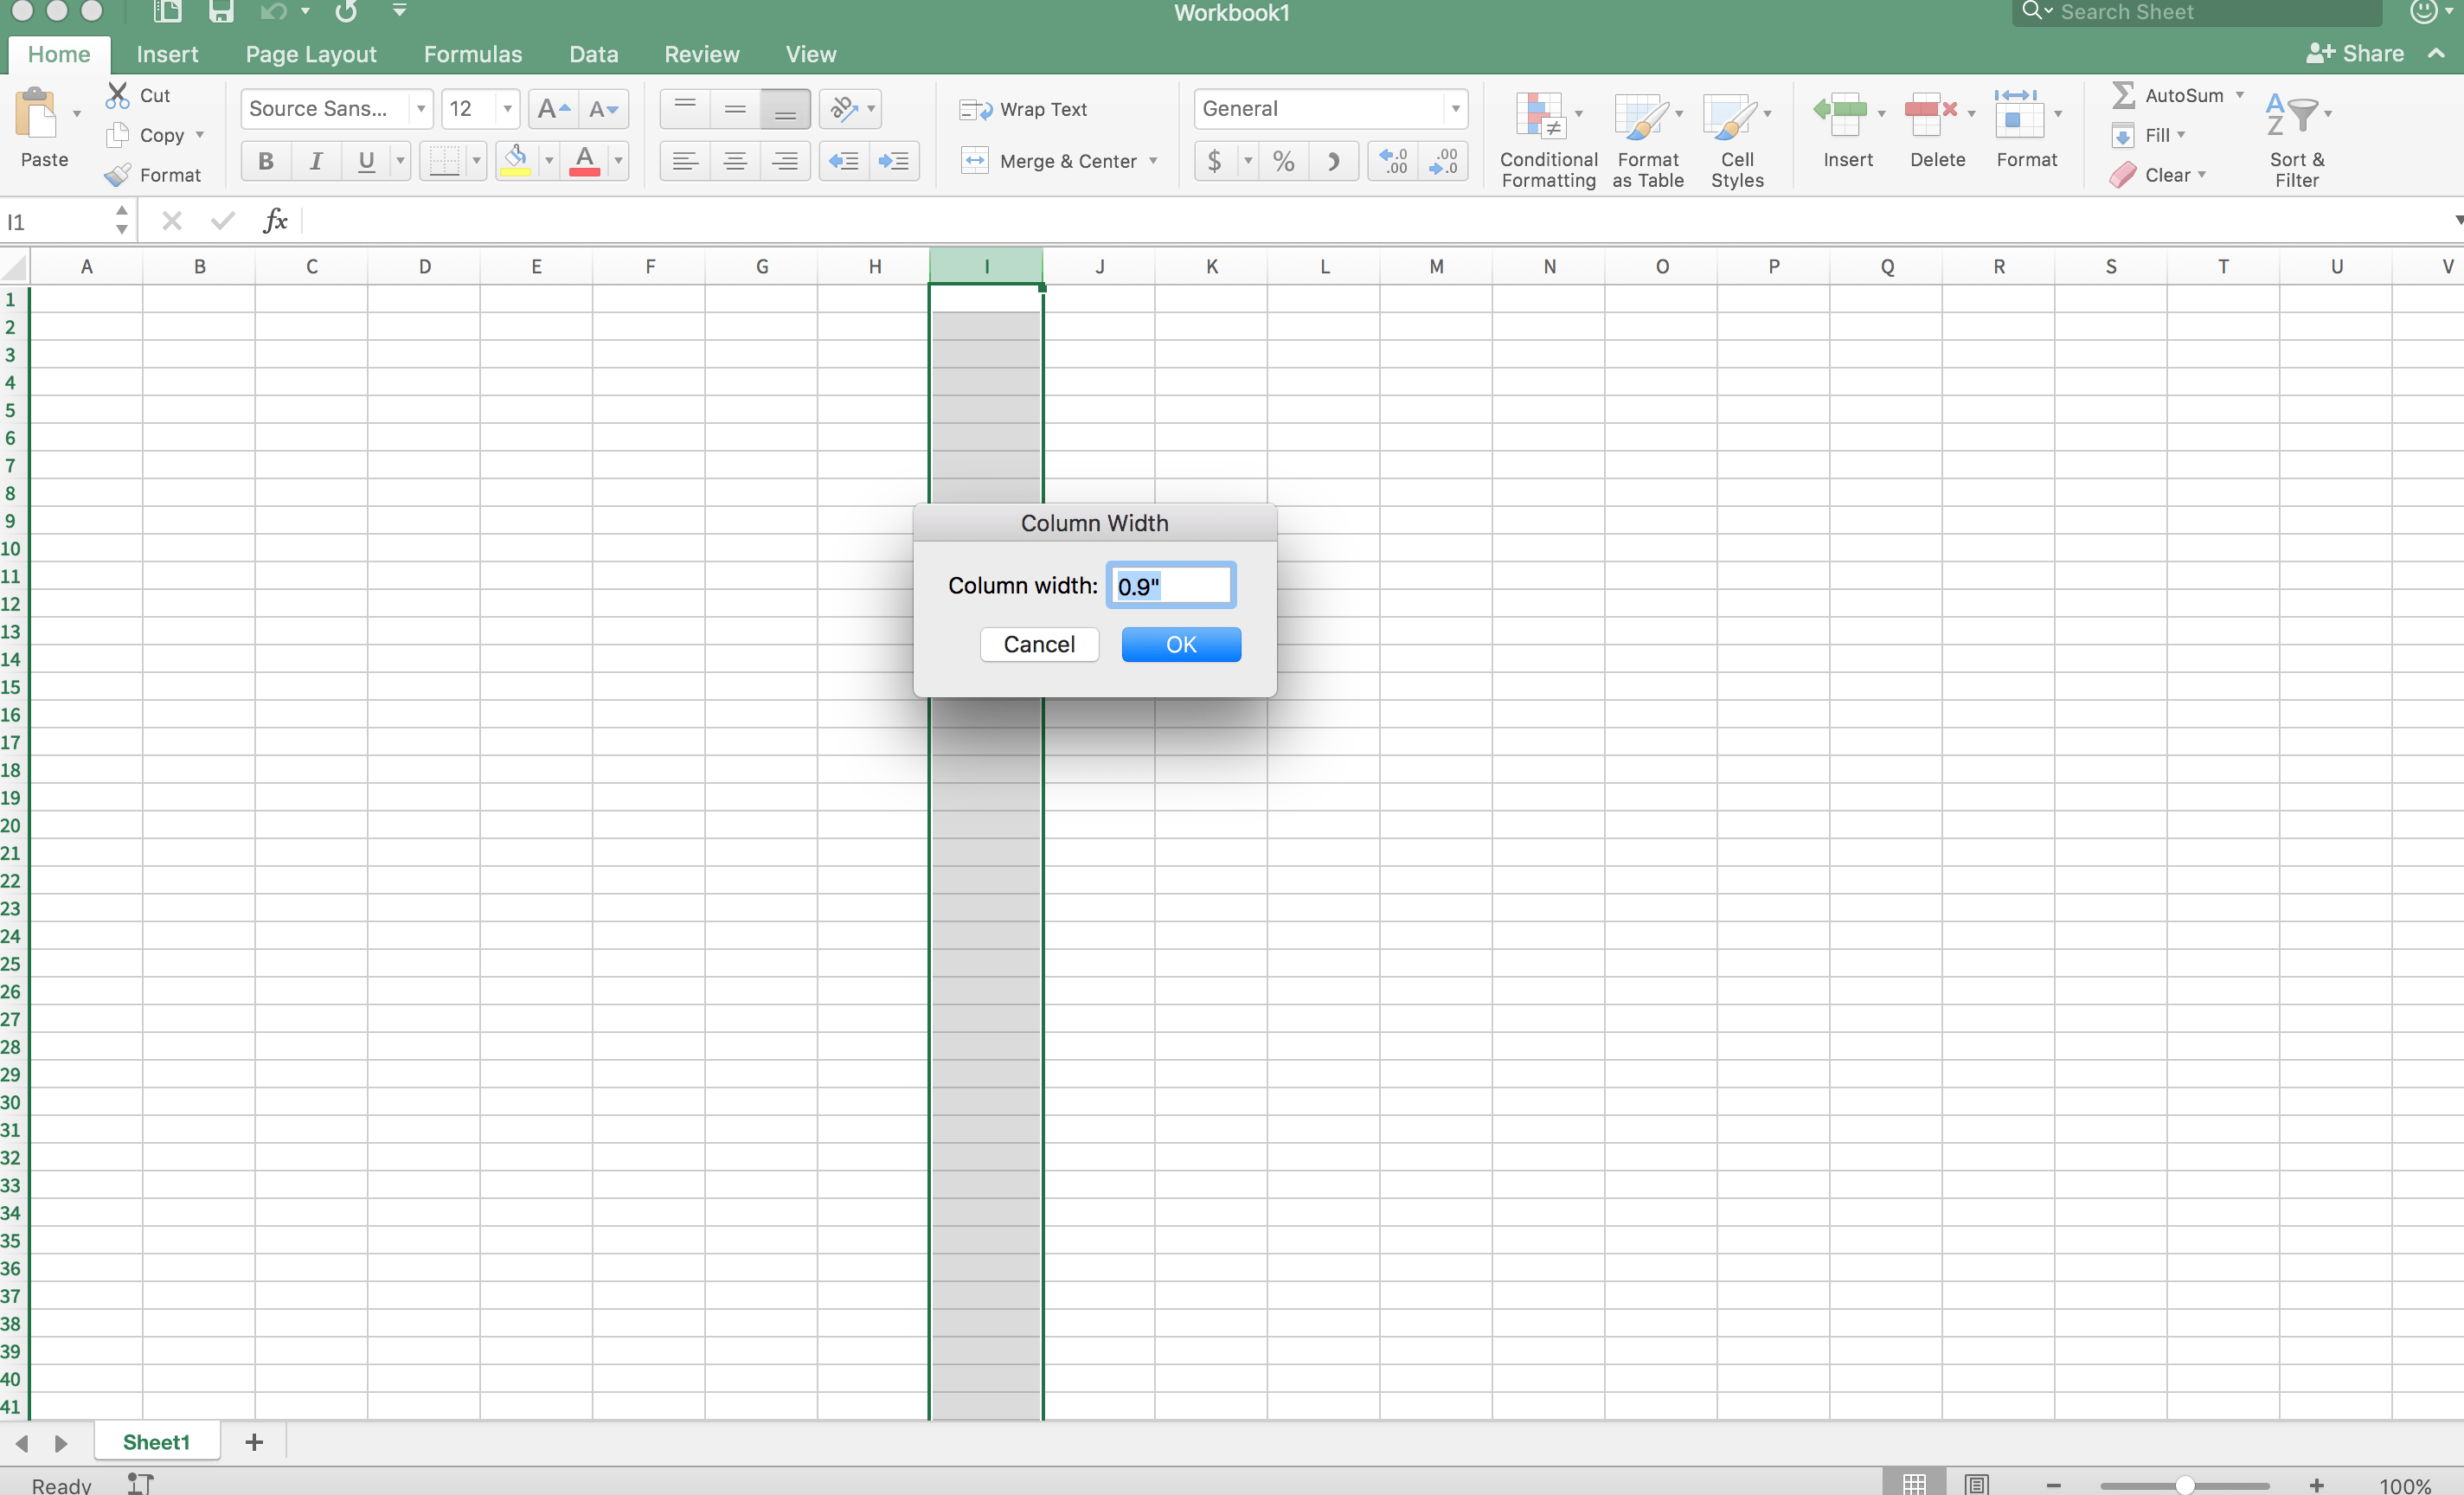 Did Excel For Mac Change Its Column Width Specifications From Inches To Something Else